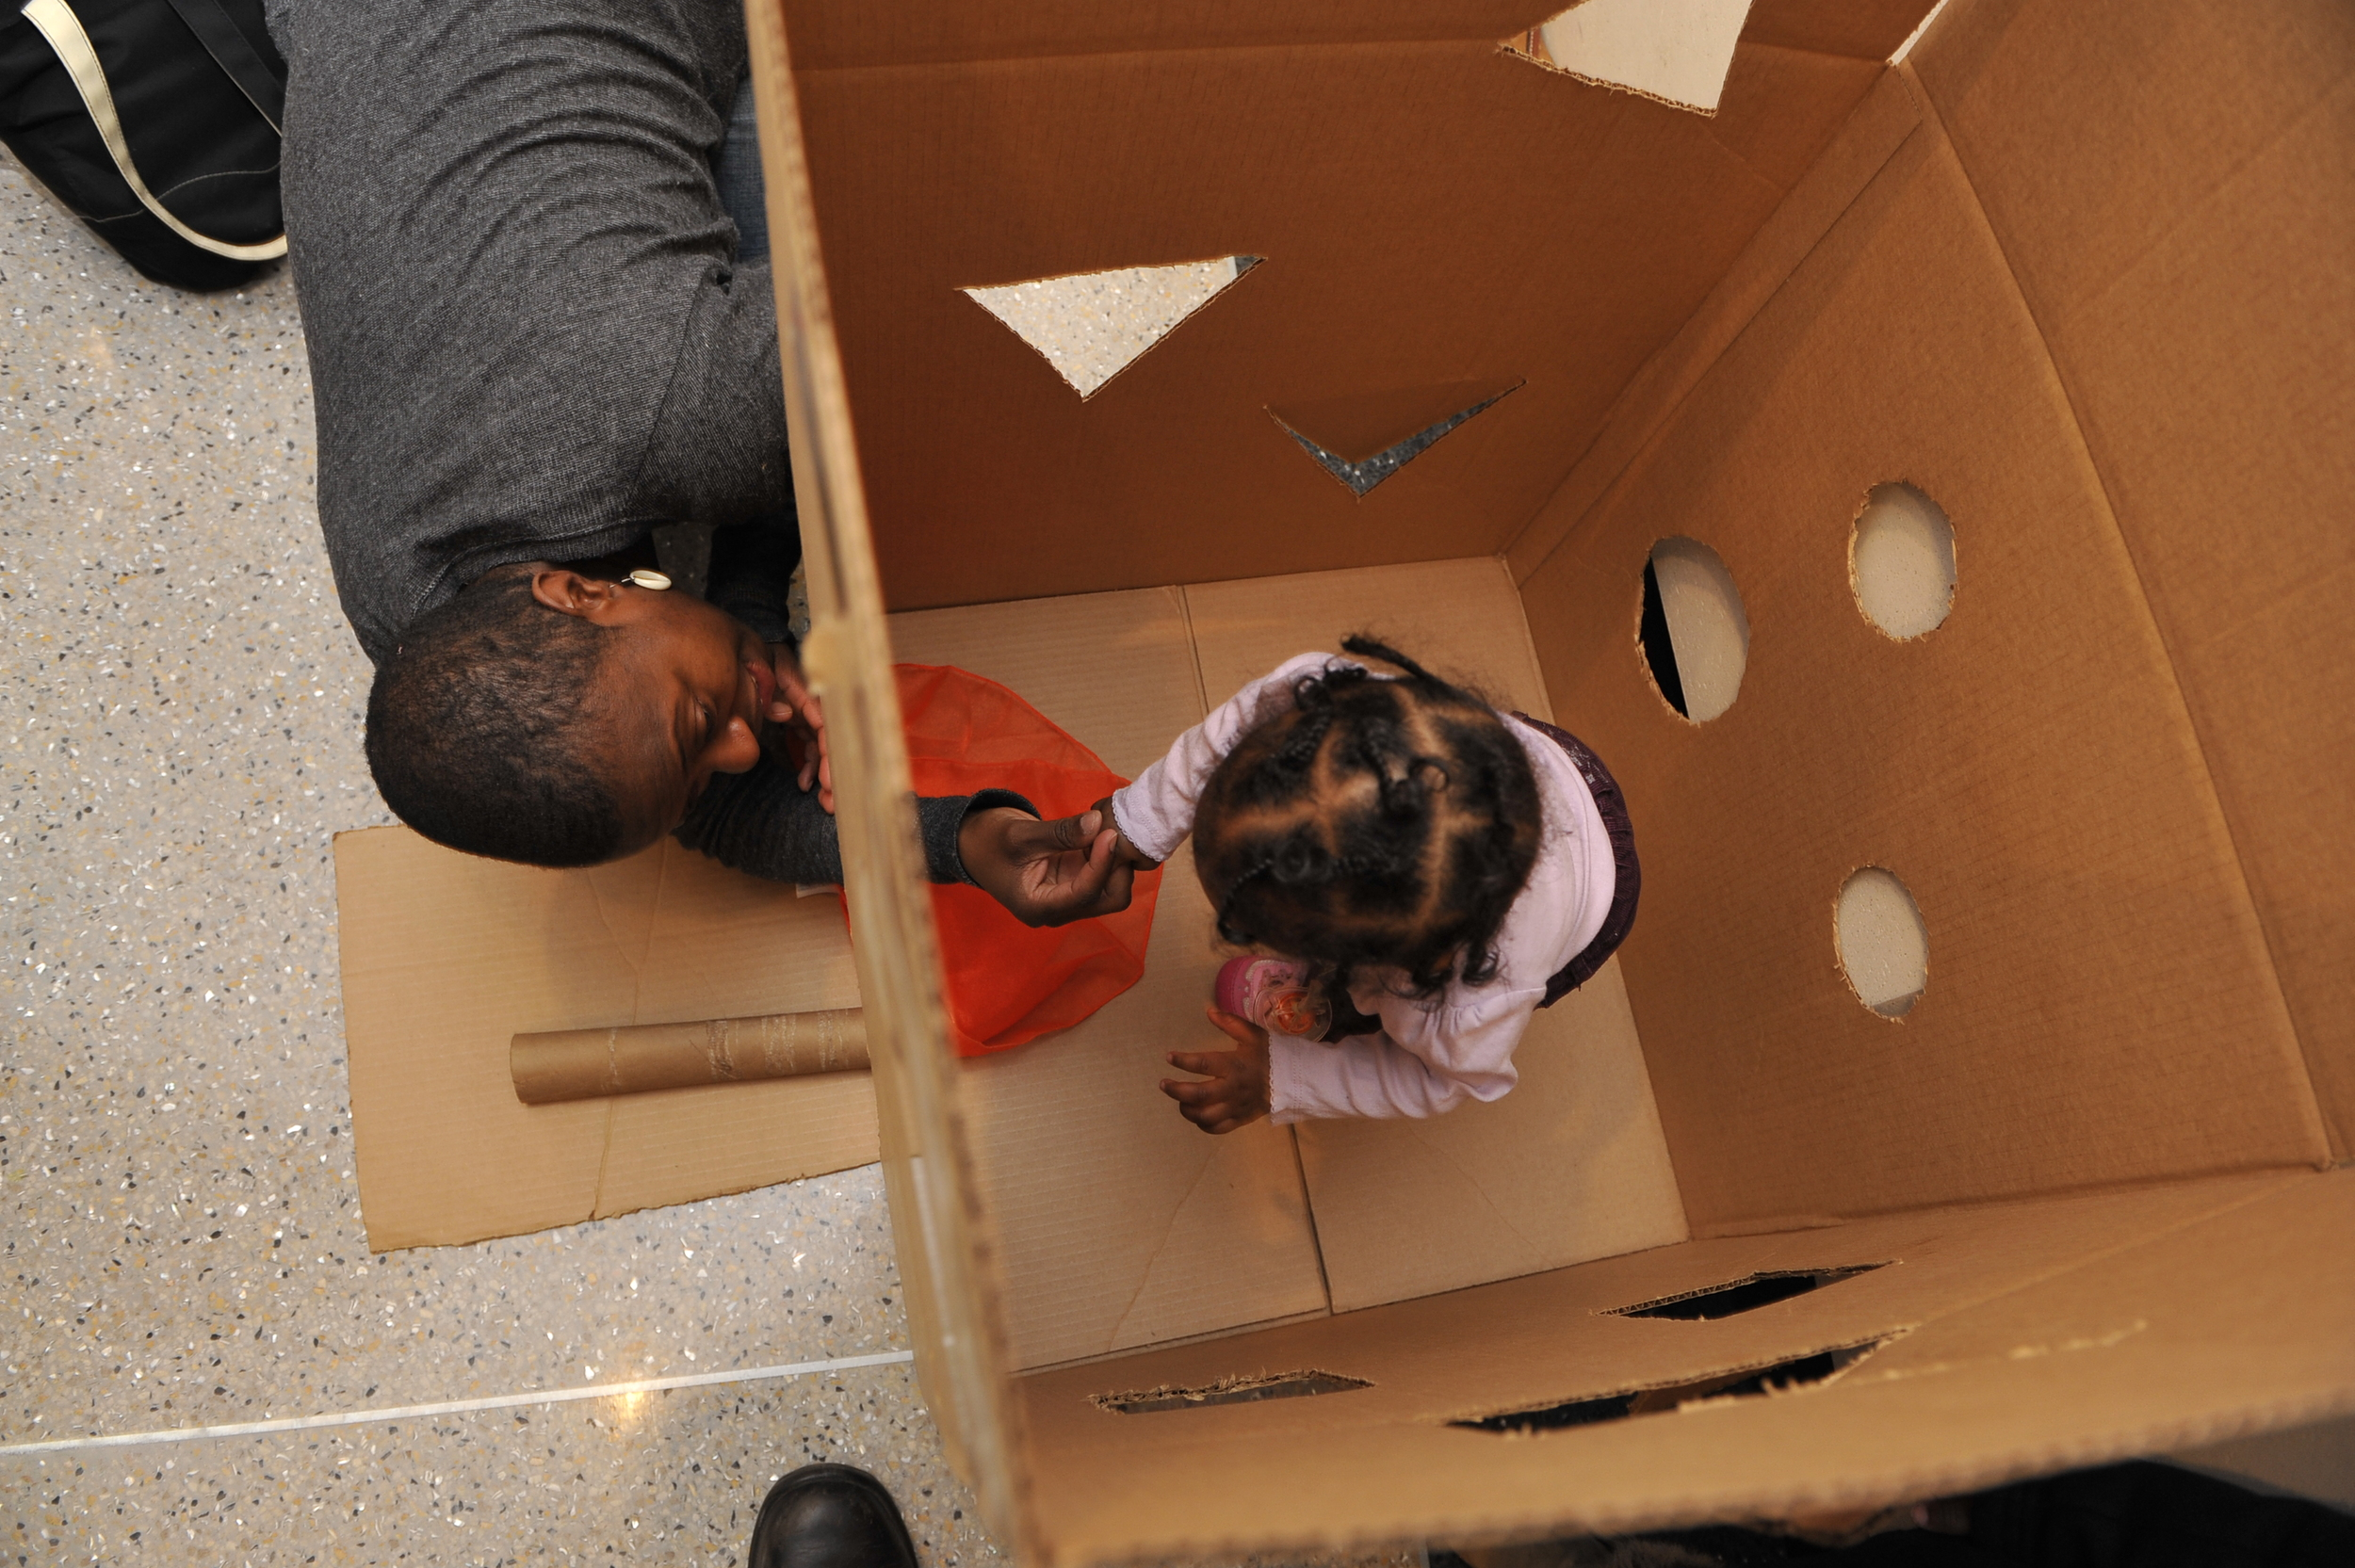 The potential of the humble cardboard box for making real and heartfelt connections is boundless.